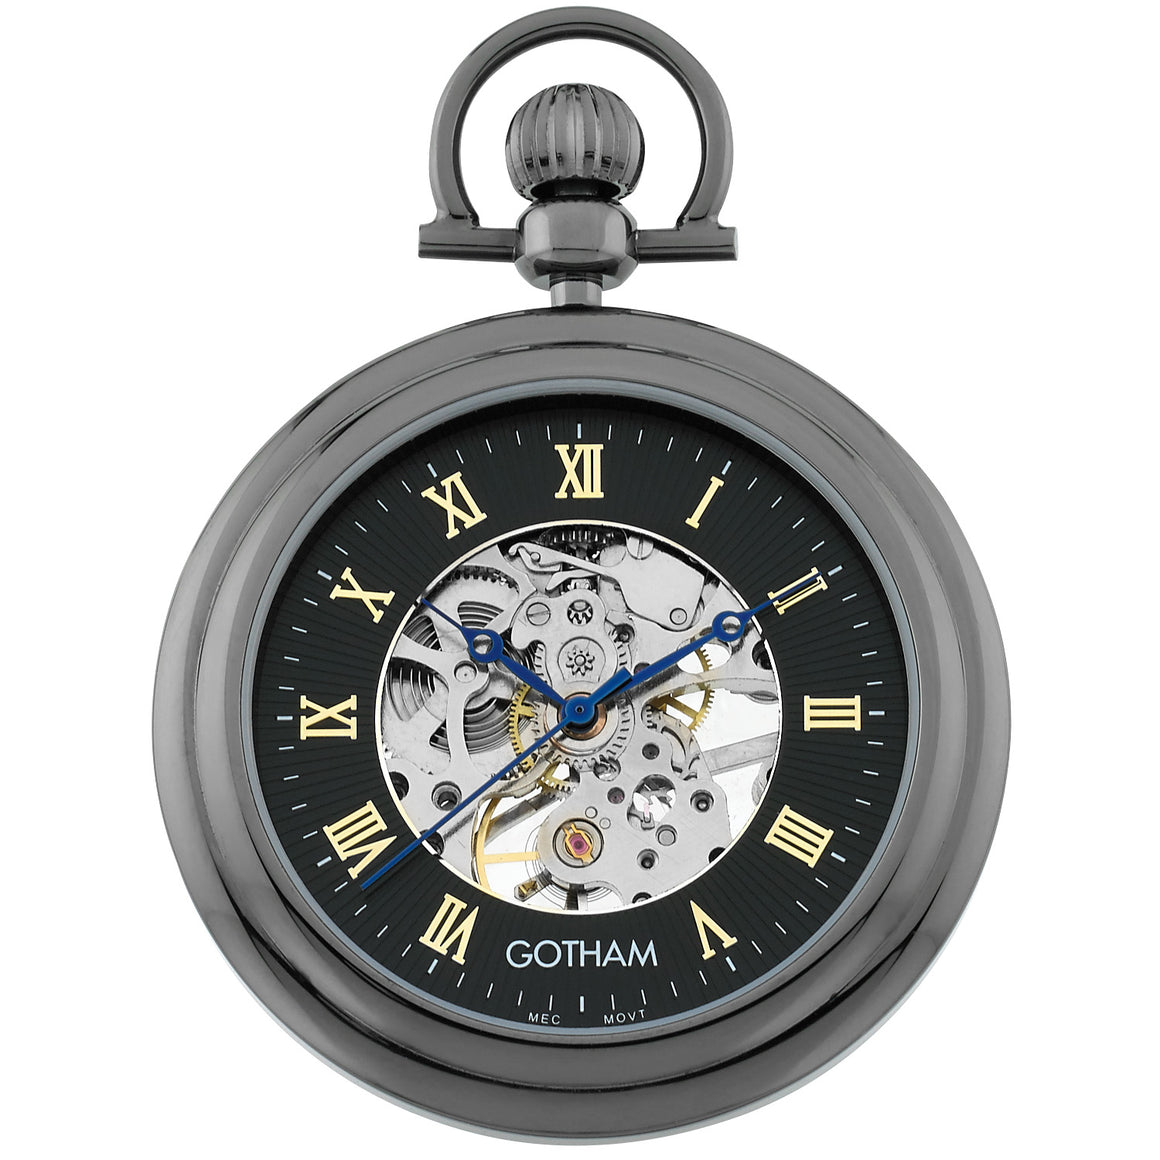 Gotham Men's Gun-Tone Mechanical Pocket Watch with Built-in Stand # GWC14055BBK - Gotham Watch